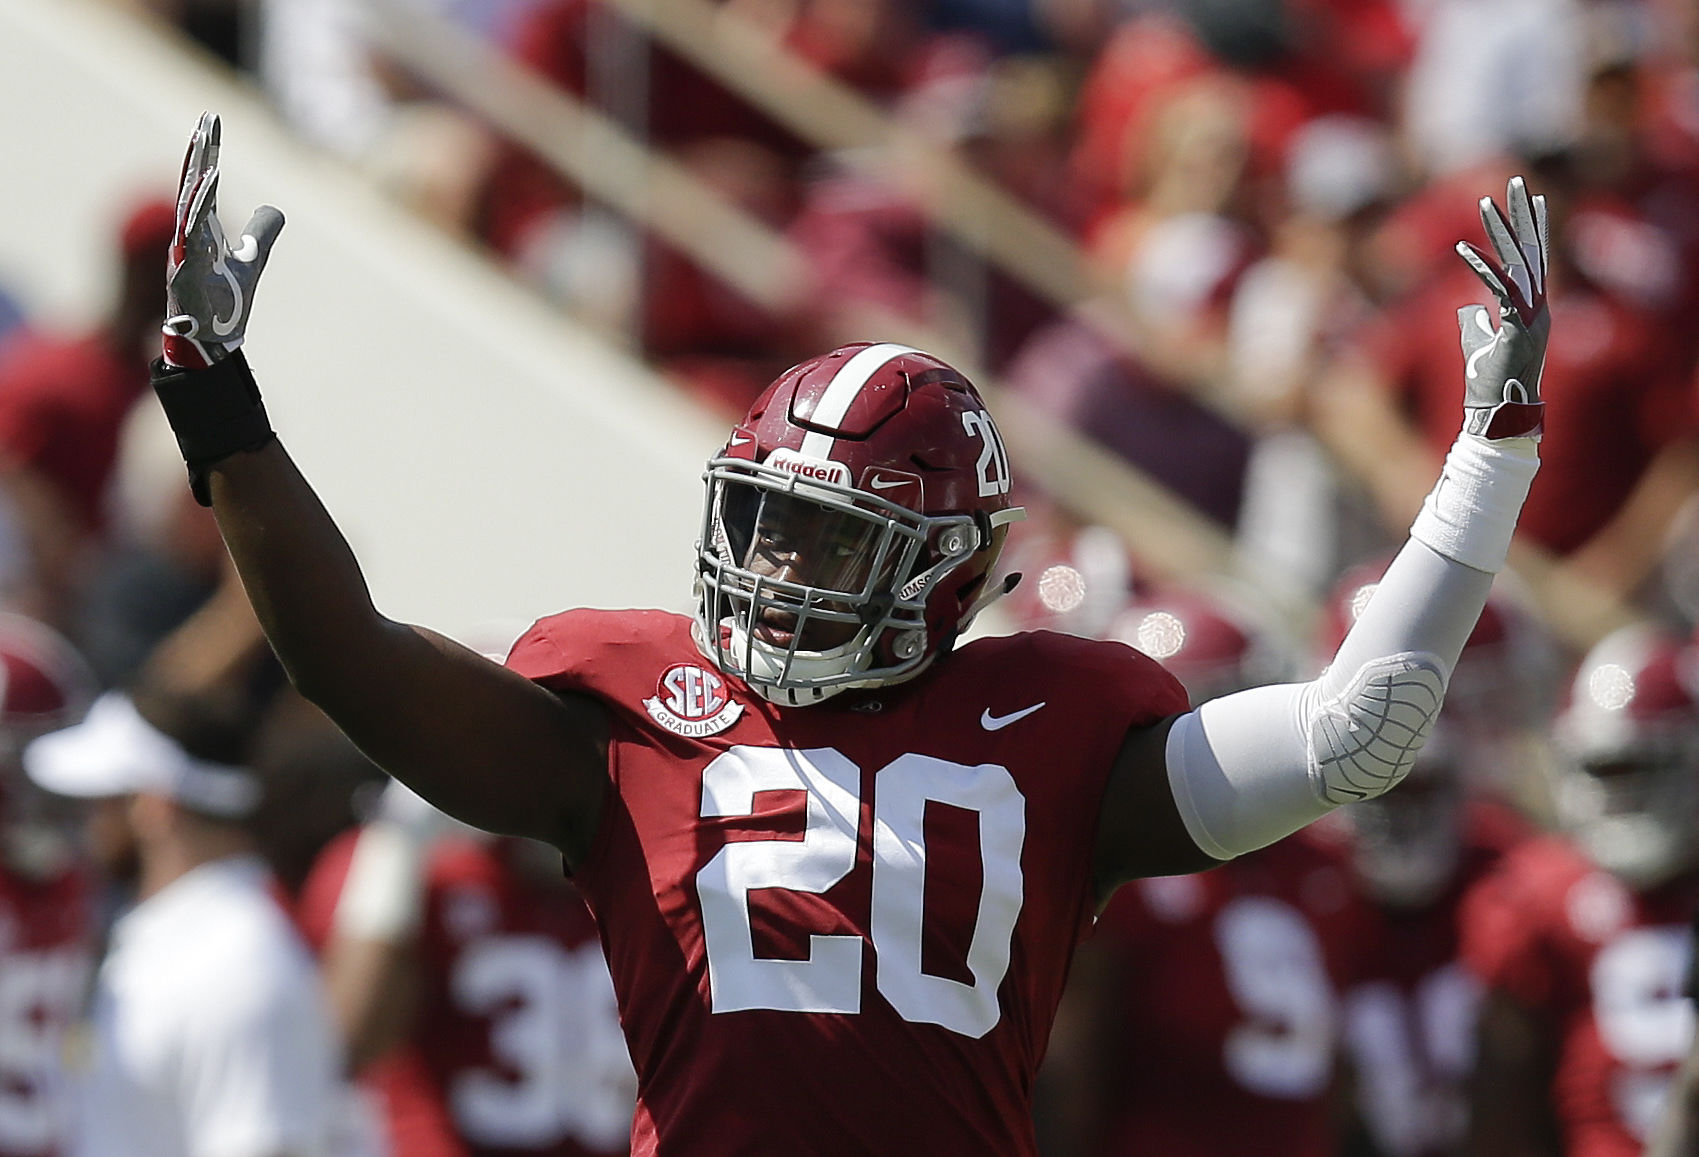 Alabama linebacker Shaun Dion Hamilton hypes up the crowd before the game against Fresno State in the first half of an NCAA college football game, Saturday, Sept. 9, 2017, in Tuscaloosa, Ala. (AP Photo/Brynn Anderson)